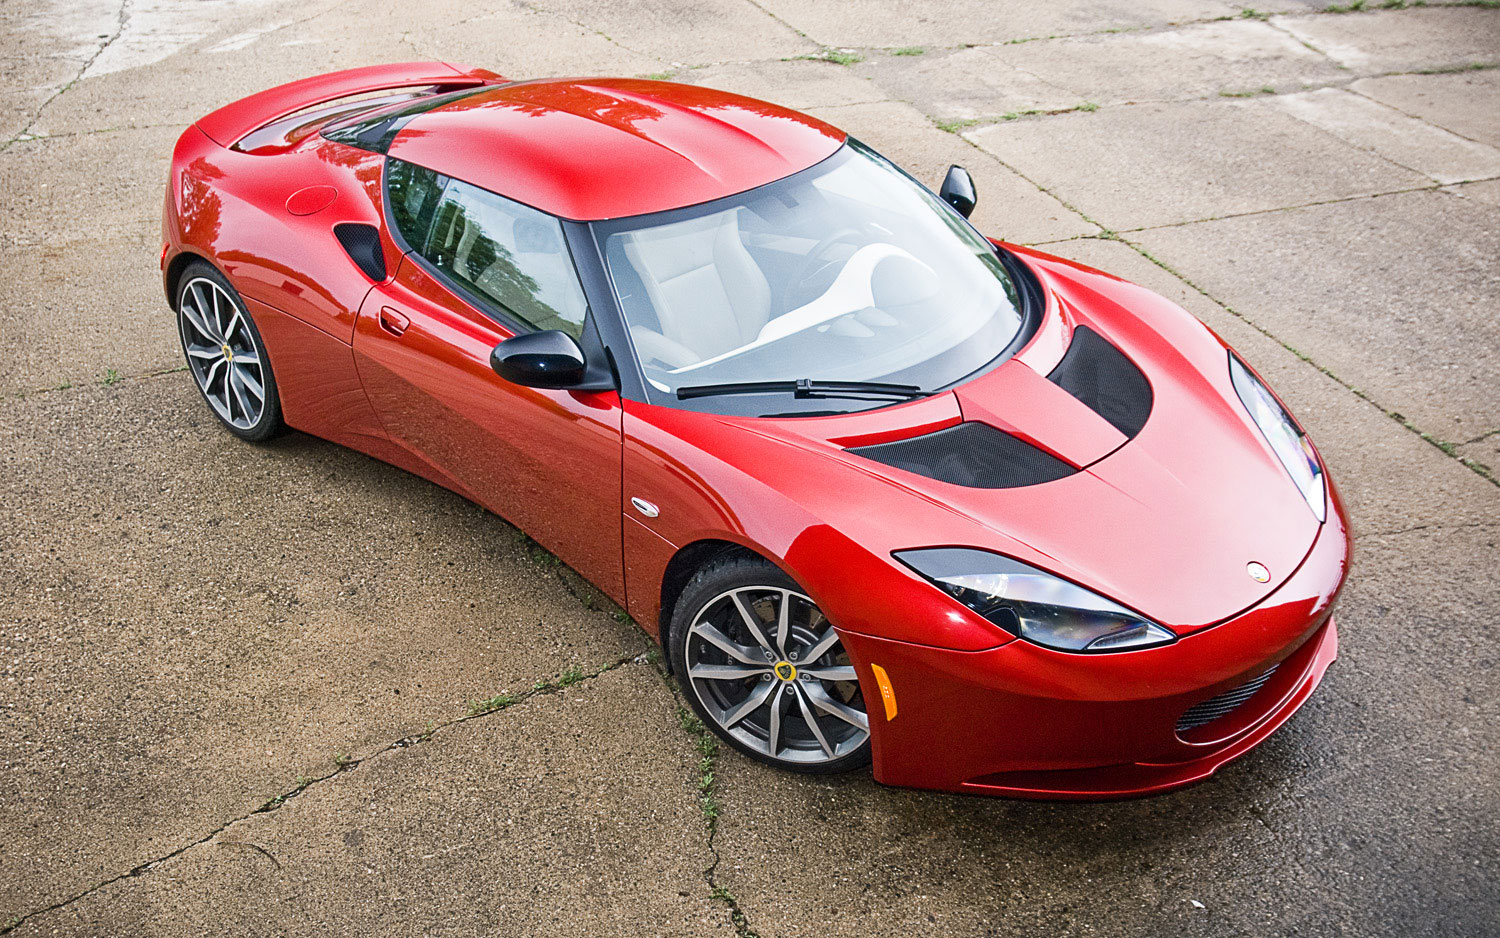 http://st.automobilemag.com/uploads/sites/11/2011/06/2011-lotus-evora-s-front-right-side-view-parked.jpg